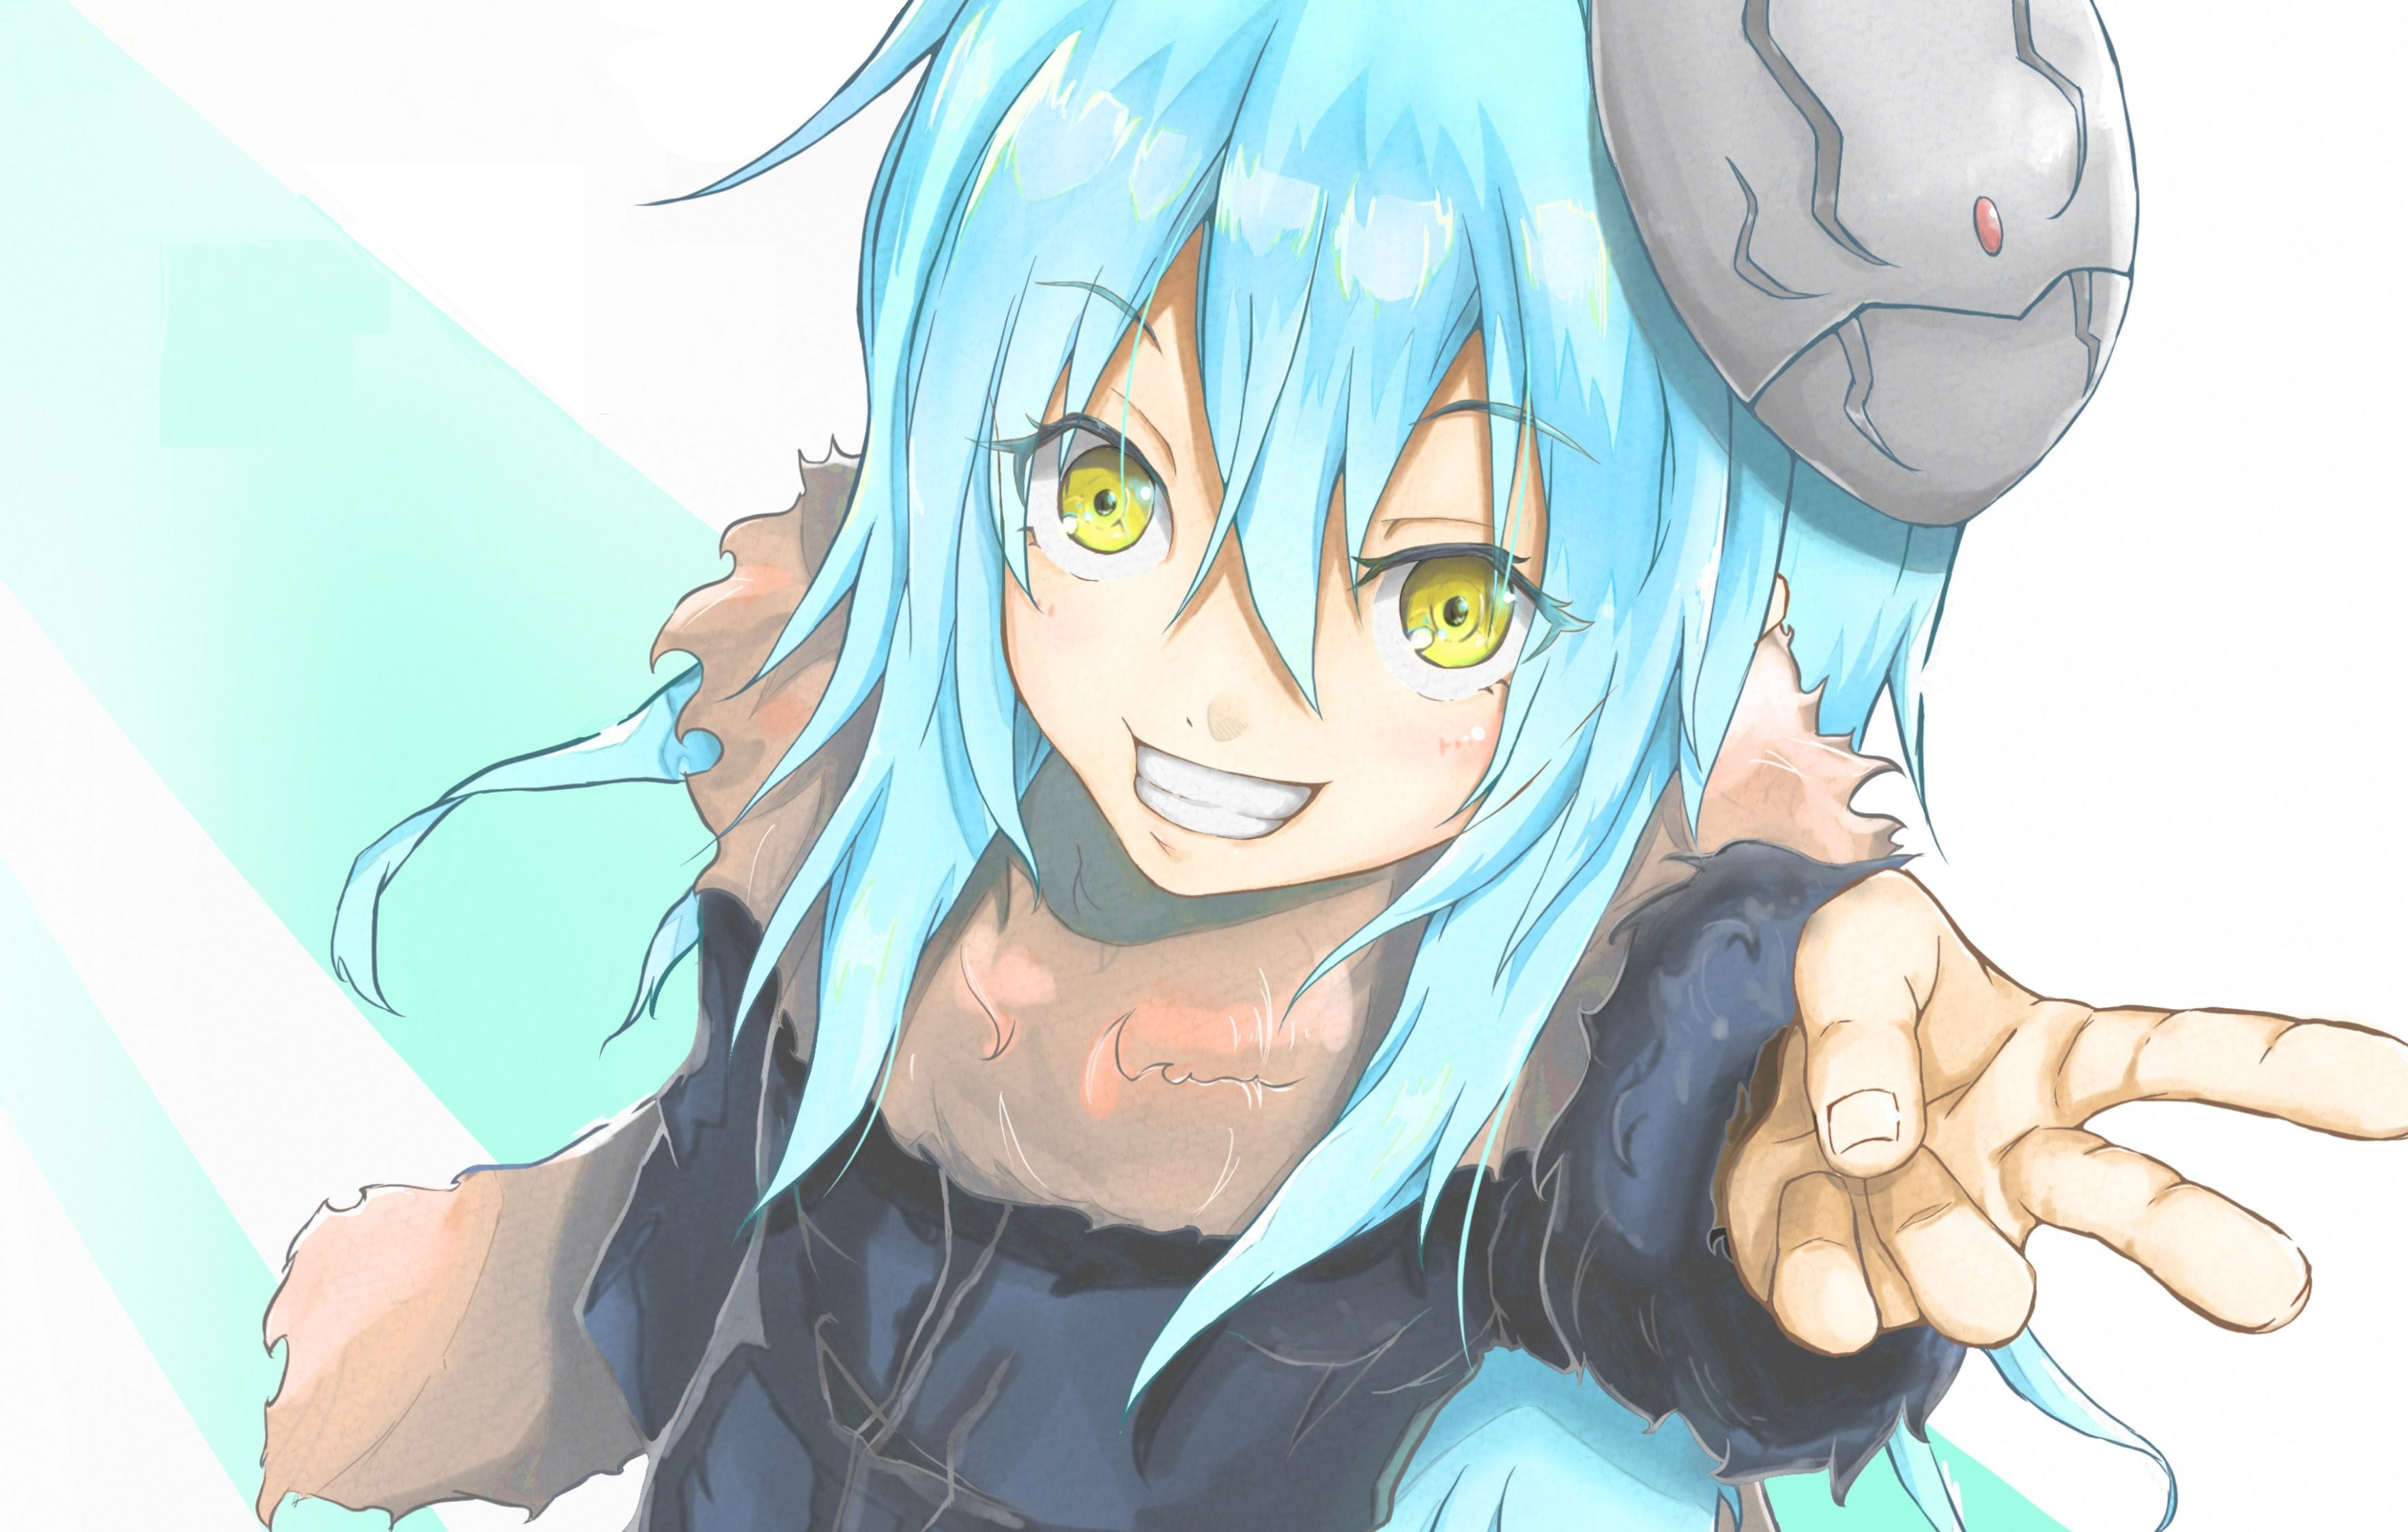 He is one of the demon lords of the octagram. Rimuru Tempest | Arte anime, Anime, Desenhista